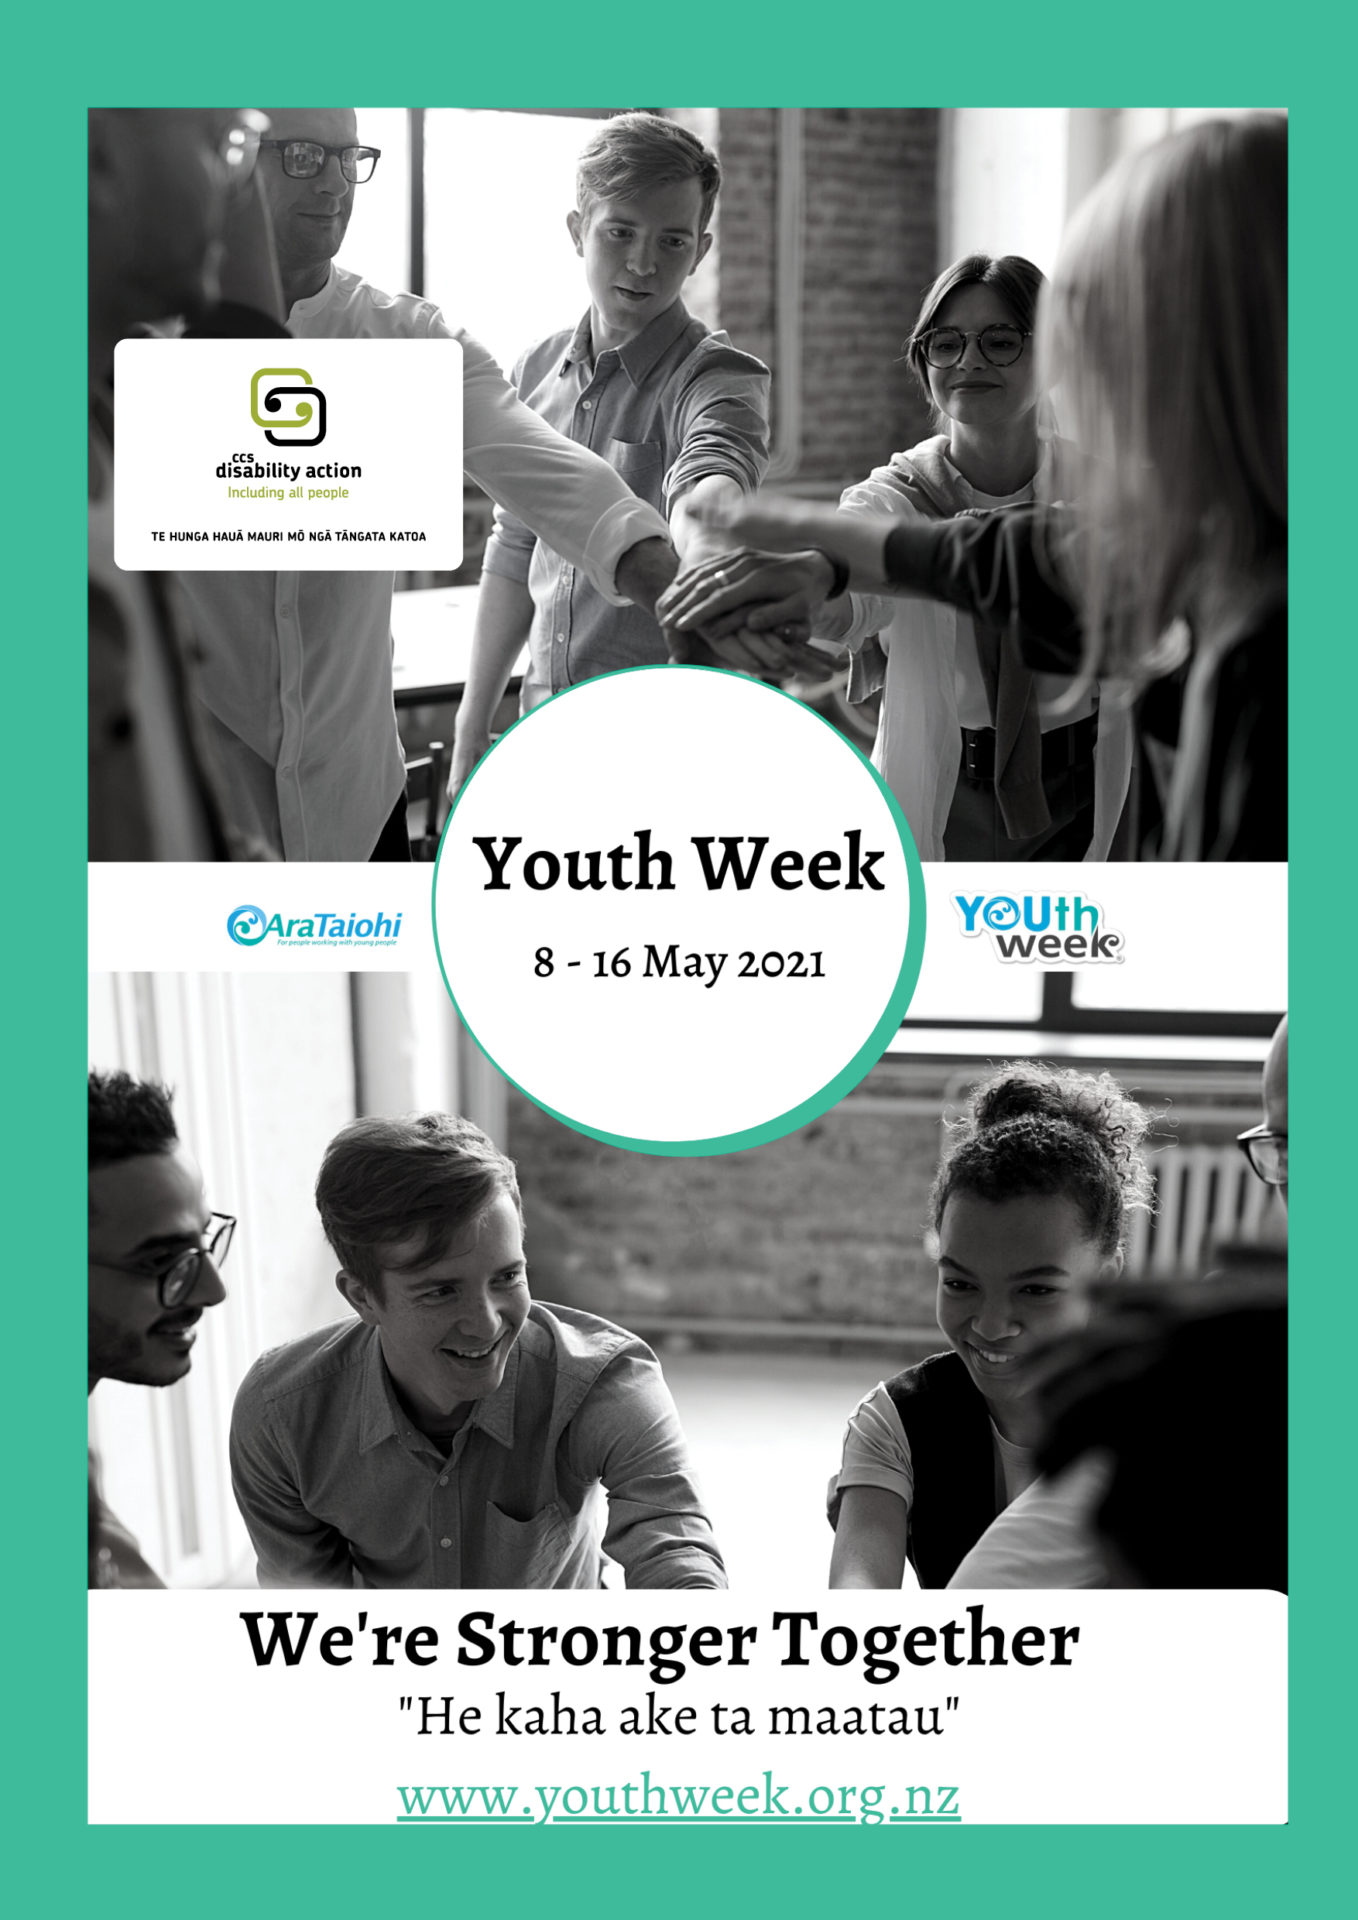 """This is a photo of a group of of five people with arms outstretched so their hands meet in the middle resting on top of each other. The logo for CCS Disability Action is in a white box, The text Youth Week and the dates: 8-16 May 2021 are in a white circle in the middle of the poster. The Ara Taiohi and Youth Week logos are in either side of the white circle. Text """"We're Stronger Together"""", """"He kaha ake ta maarau"""" and www.youthweek.org.nz are shown at the bottom."""